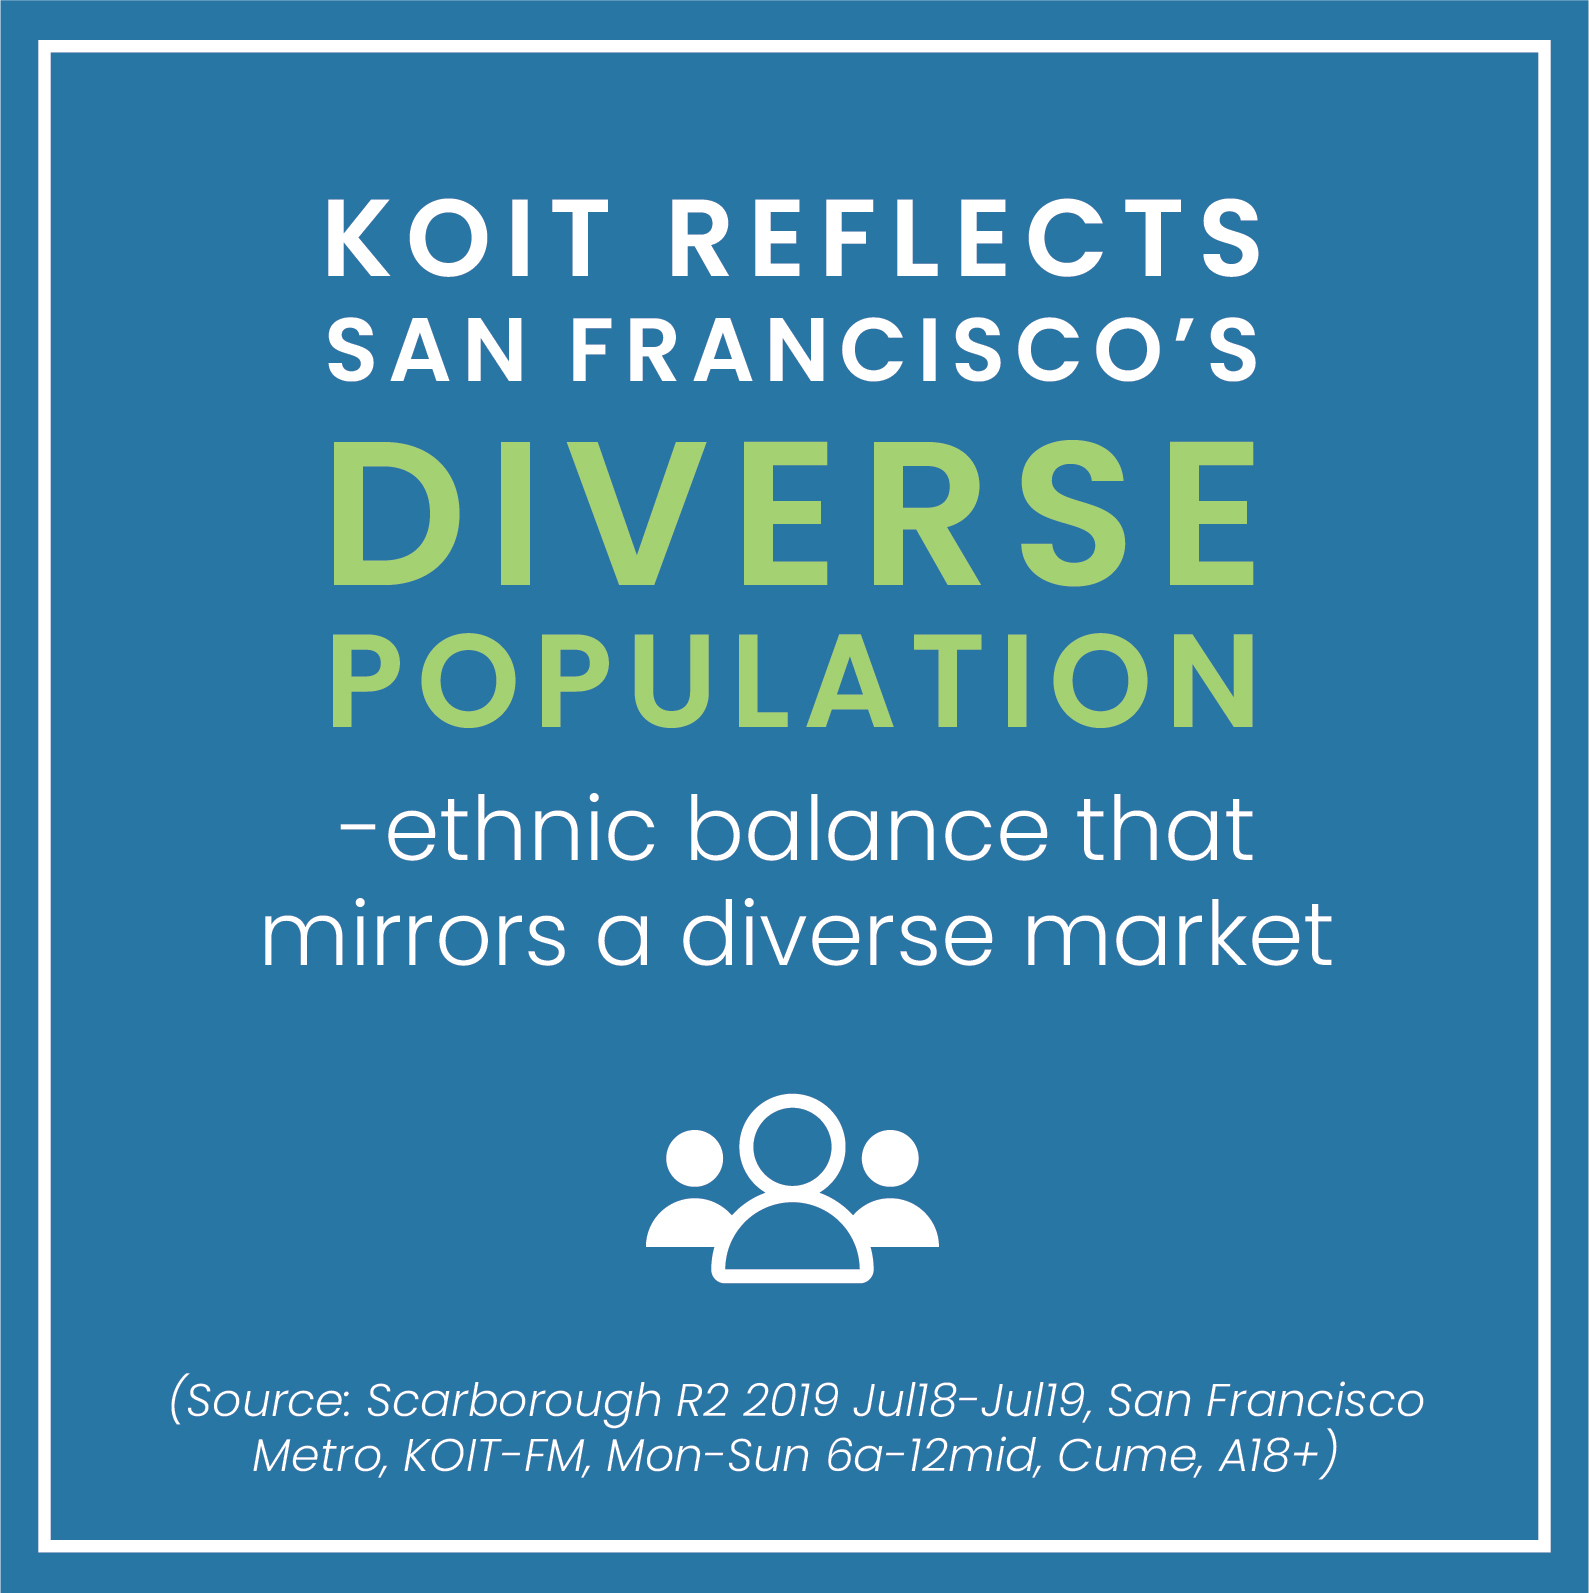 KOIT San Francisco diverse population